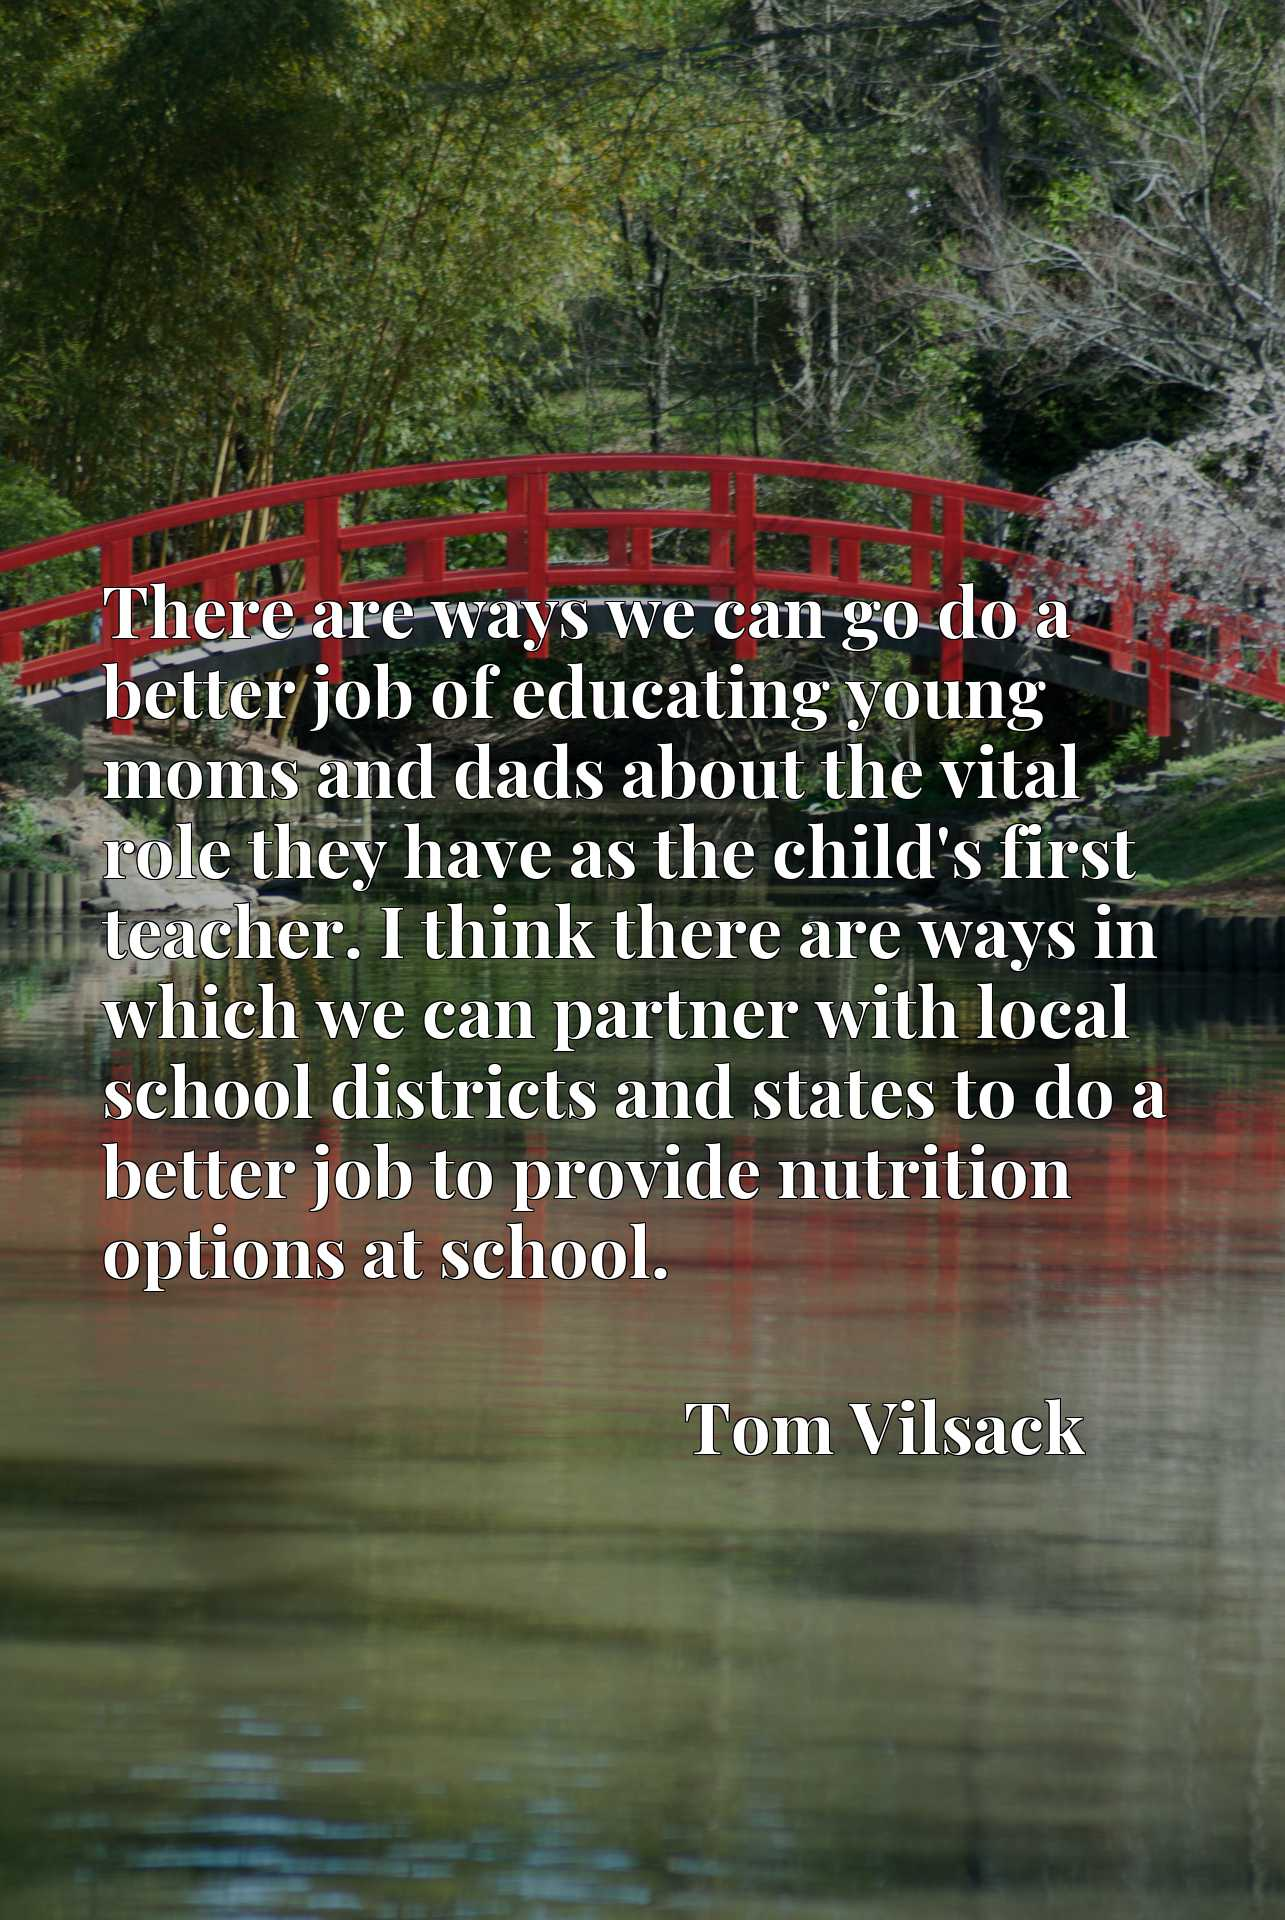 Quote Picture :There are ways we can go do a better job of educating young moms and dads about the vital role they have as the child's first teacher. I think there are ways in which we can partner with local school districts and states to do a better job to provide nutrition options at school.